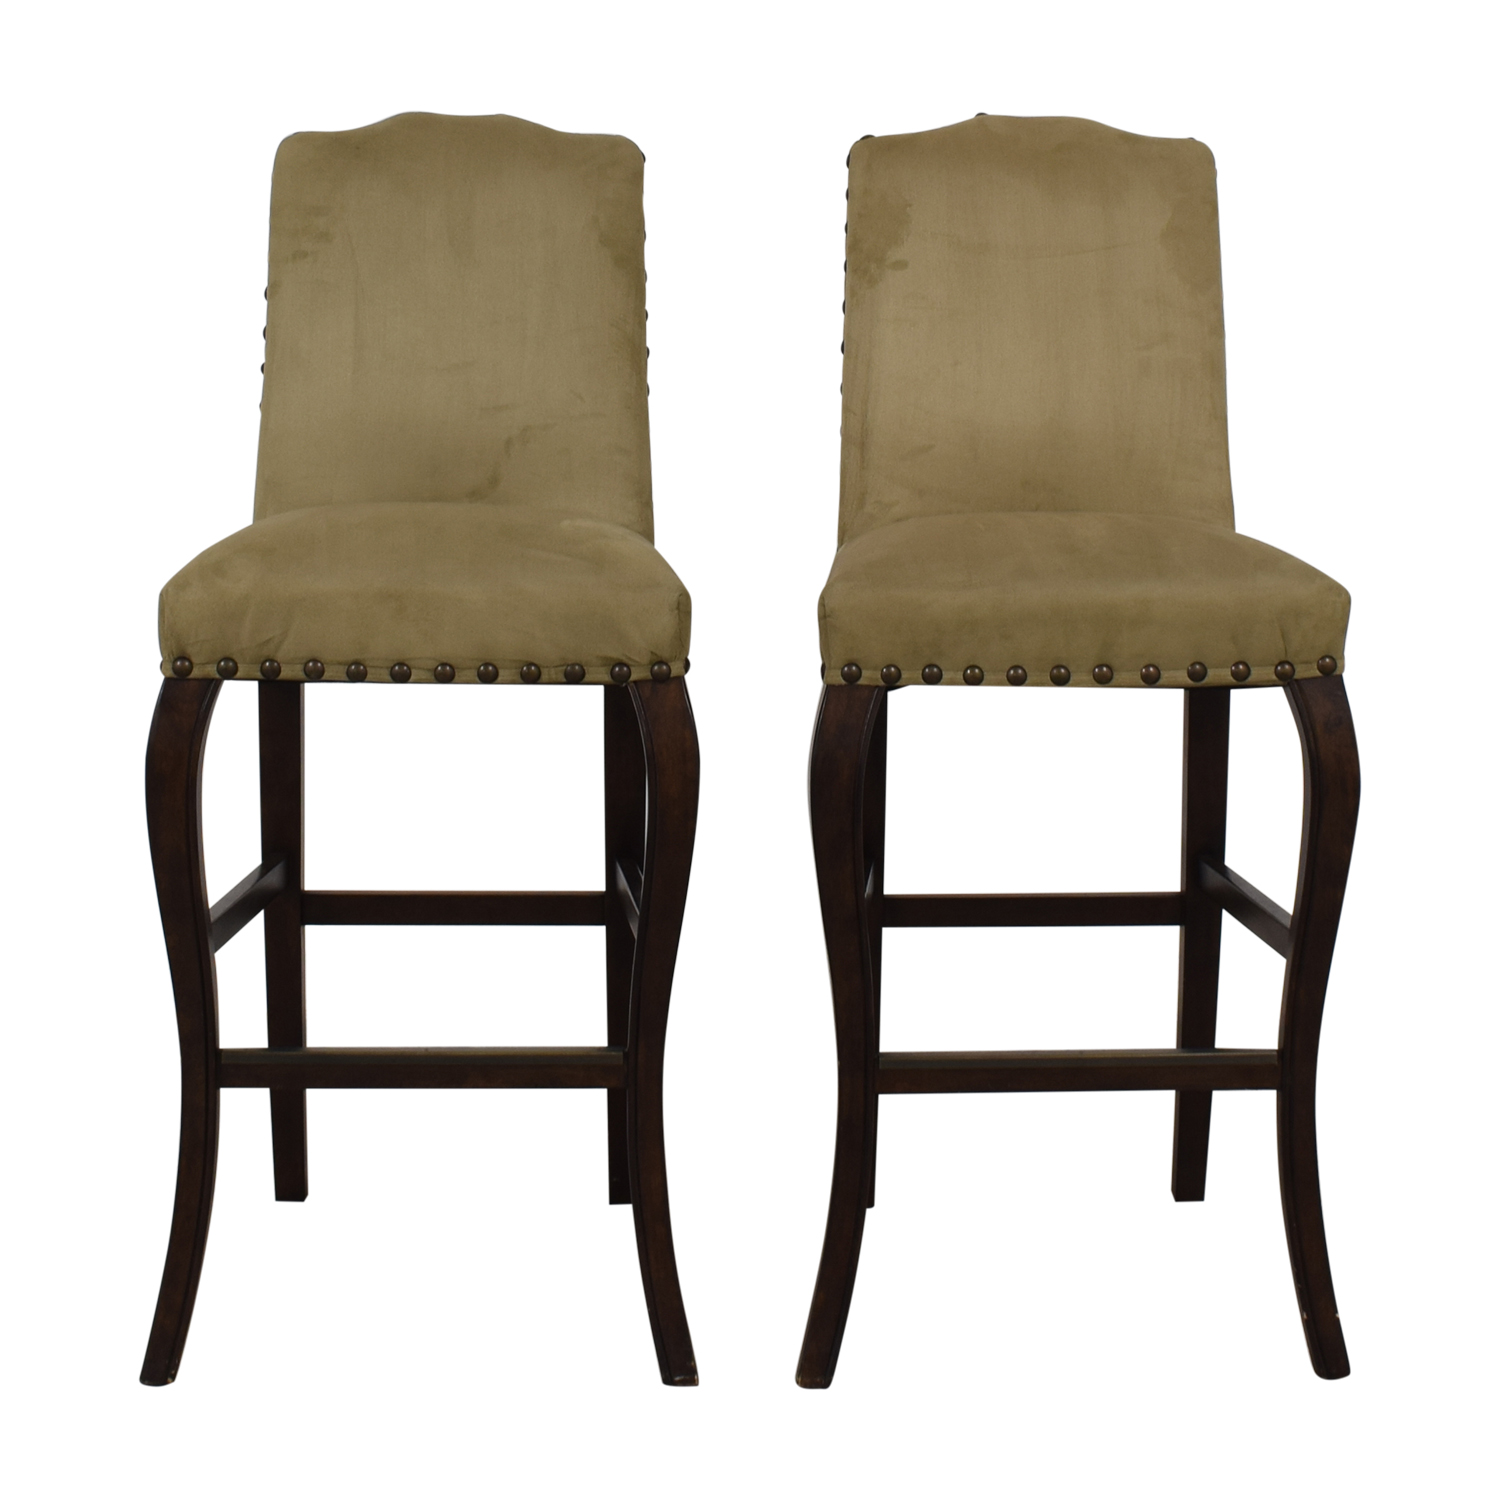 Williams Sonoma William Sonoma Bar Stools nj